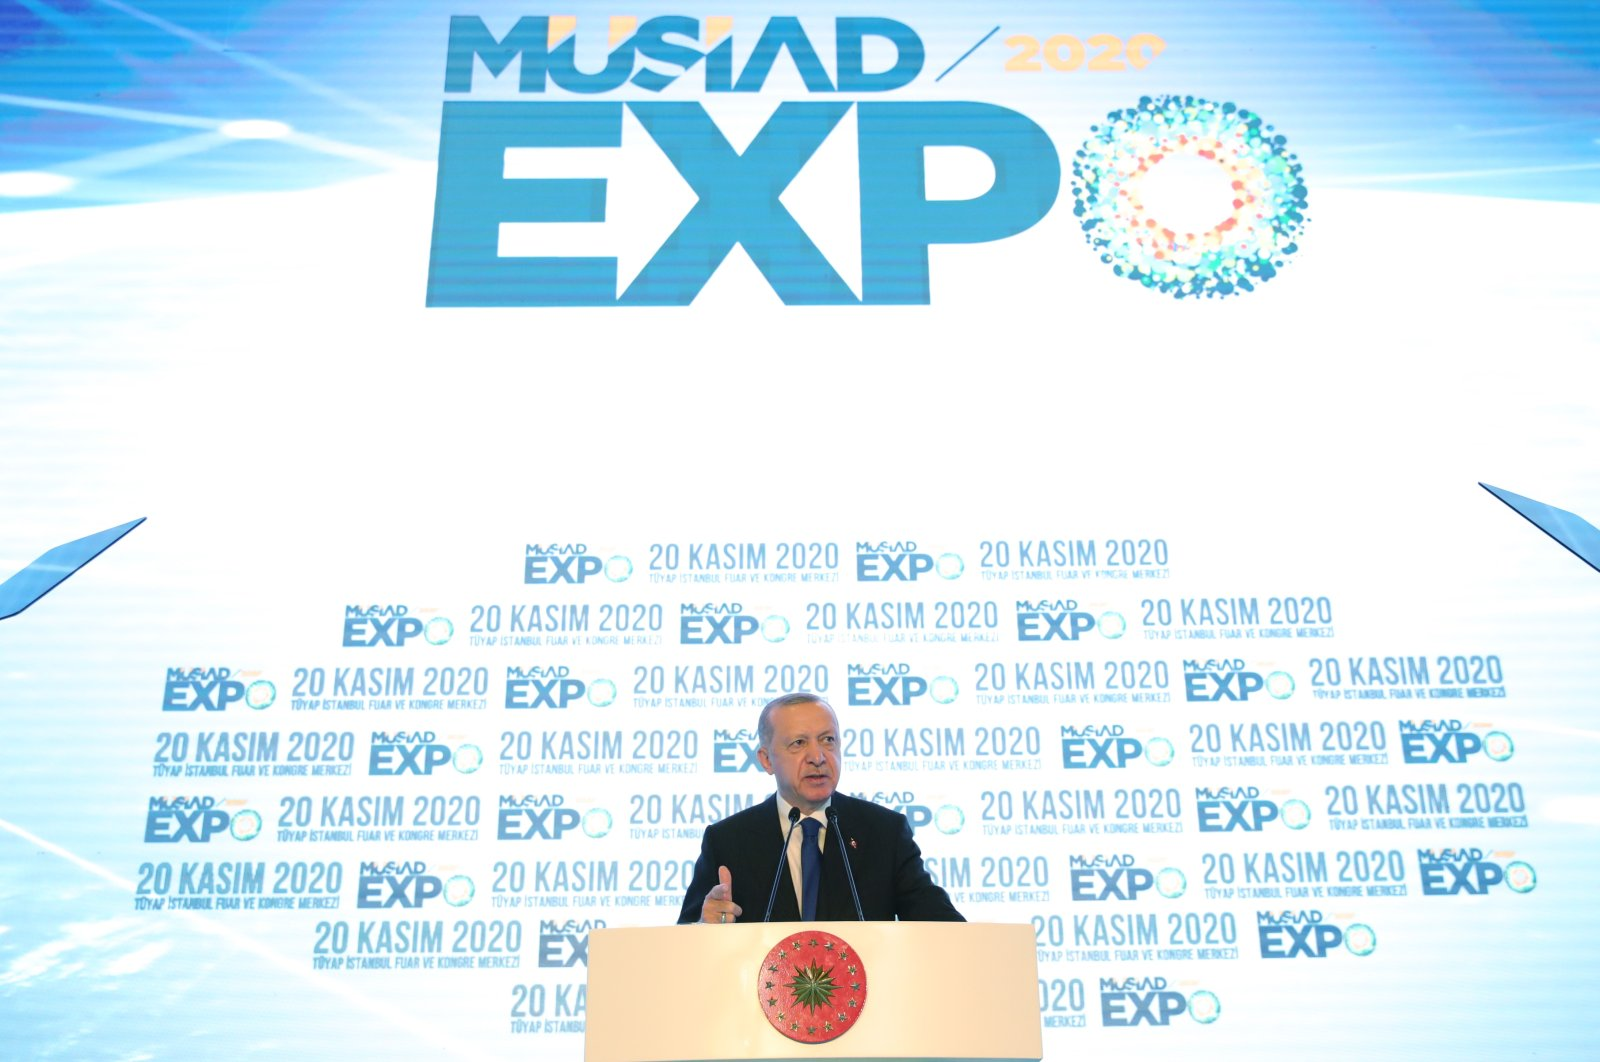 President Recep Tayyip Erdoğan delivers a speech during Independent Industrialists and Businessmen's Association (MÜSIAD) EXPO 2020 trade fair in Istanbul, Turkey, Nov. 20, 2020. (AA Photo)